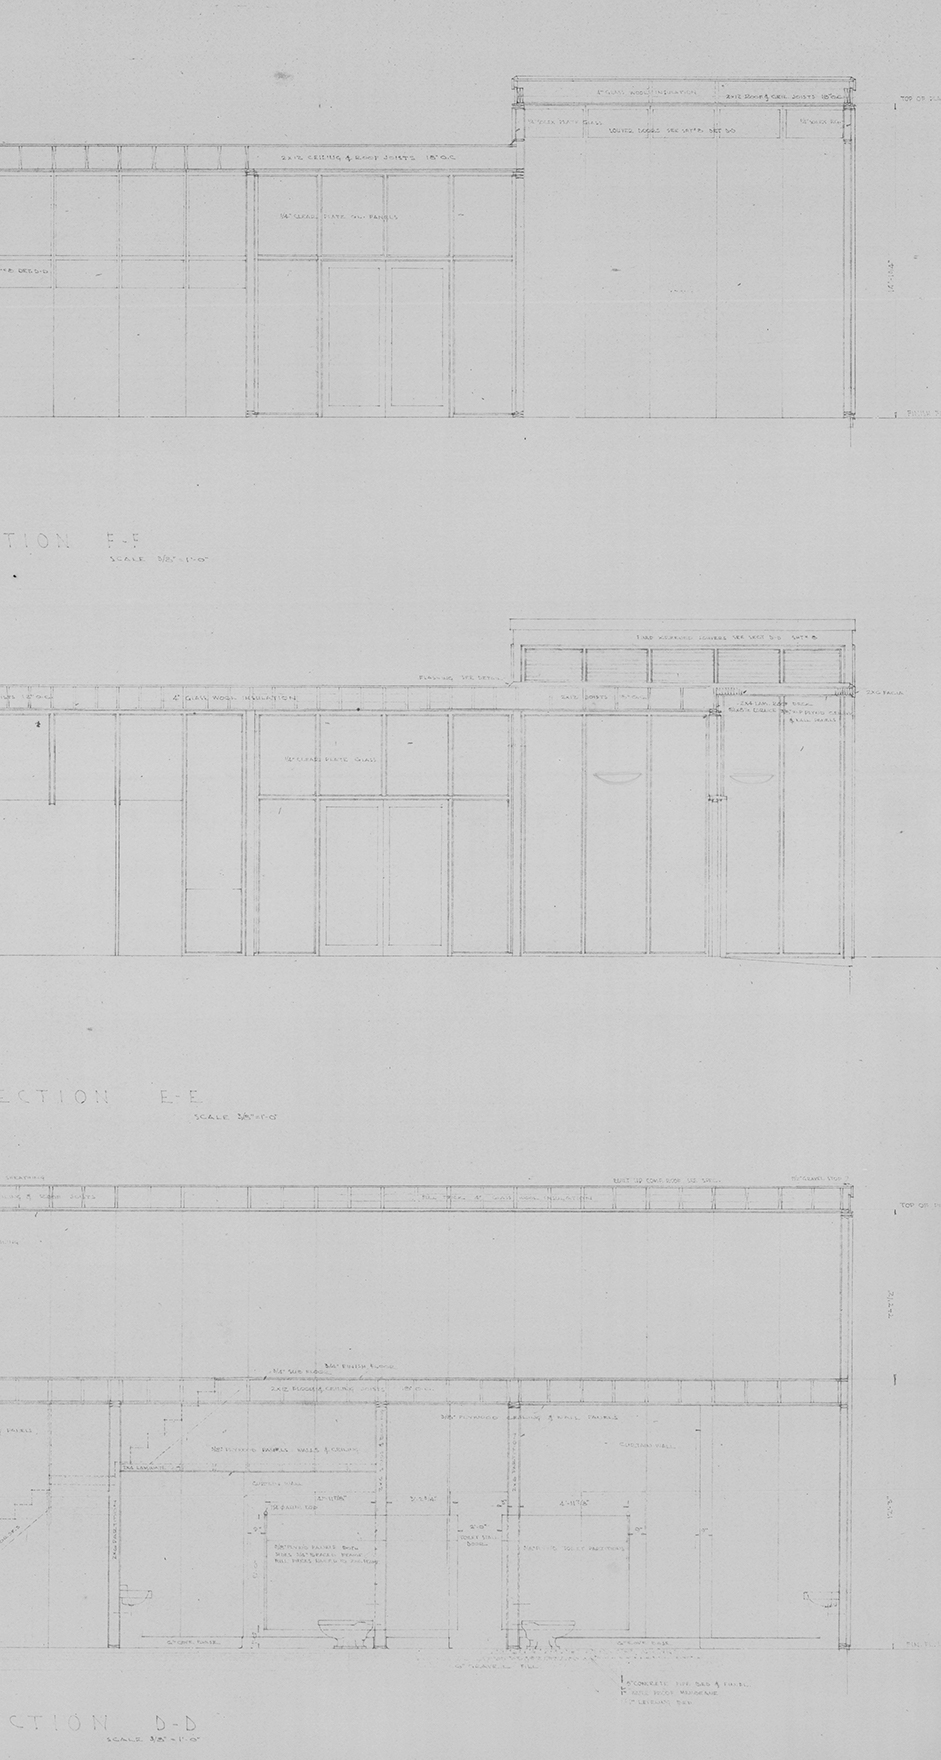 Section Sketch of House, John Yeon architectural drawings, 1934-1976